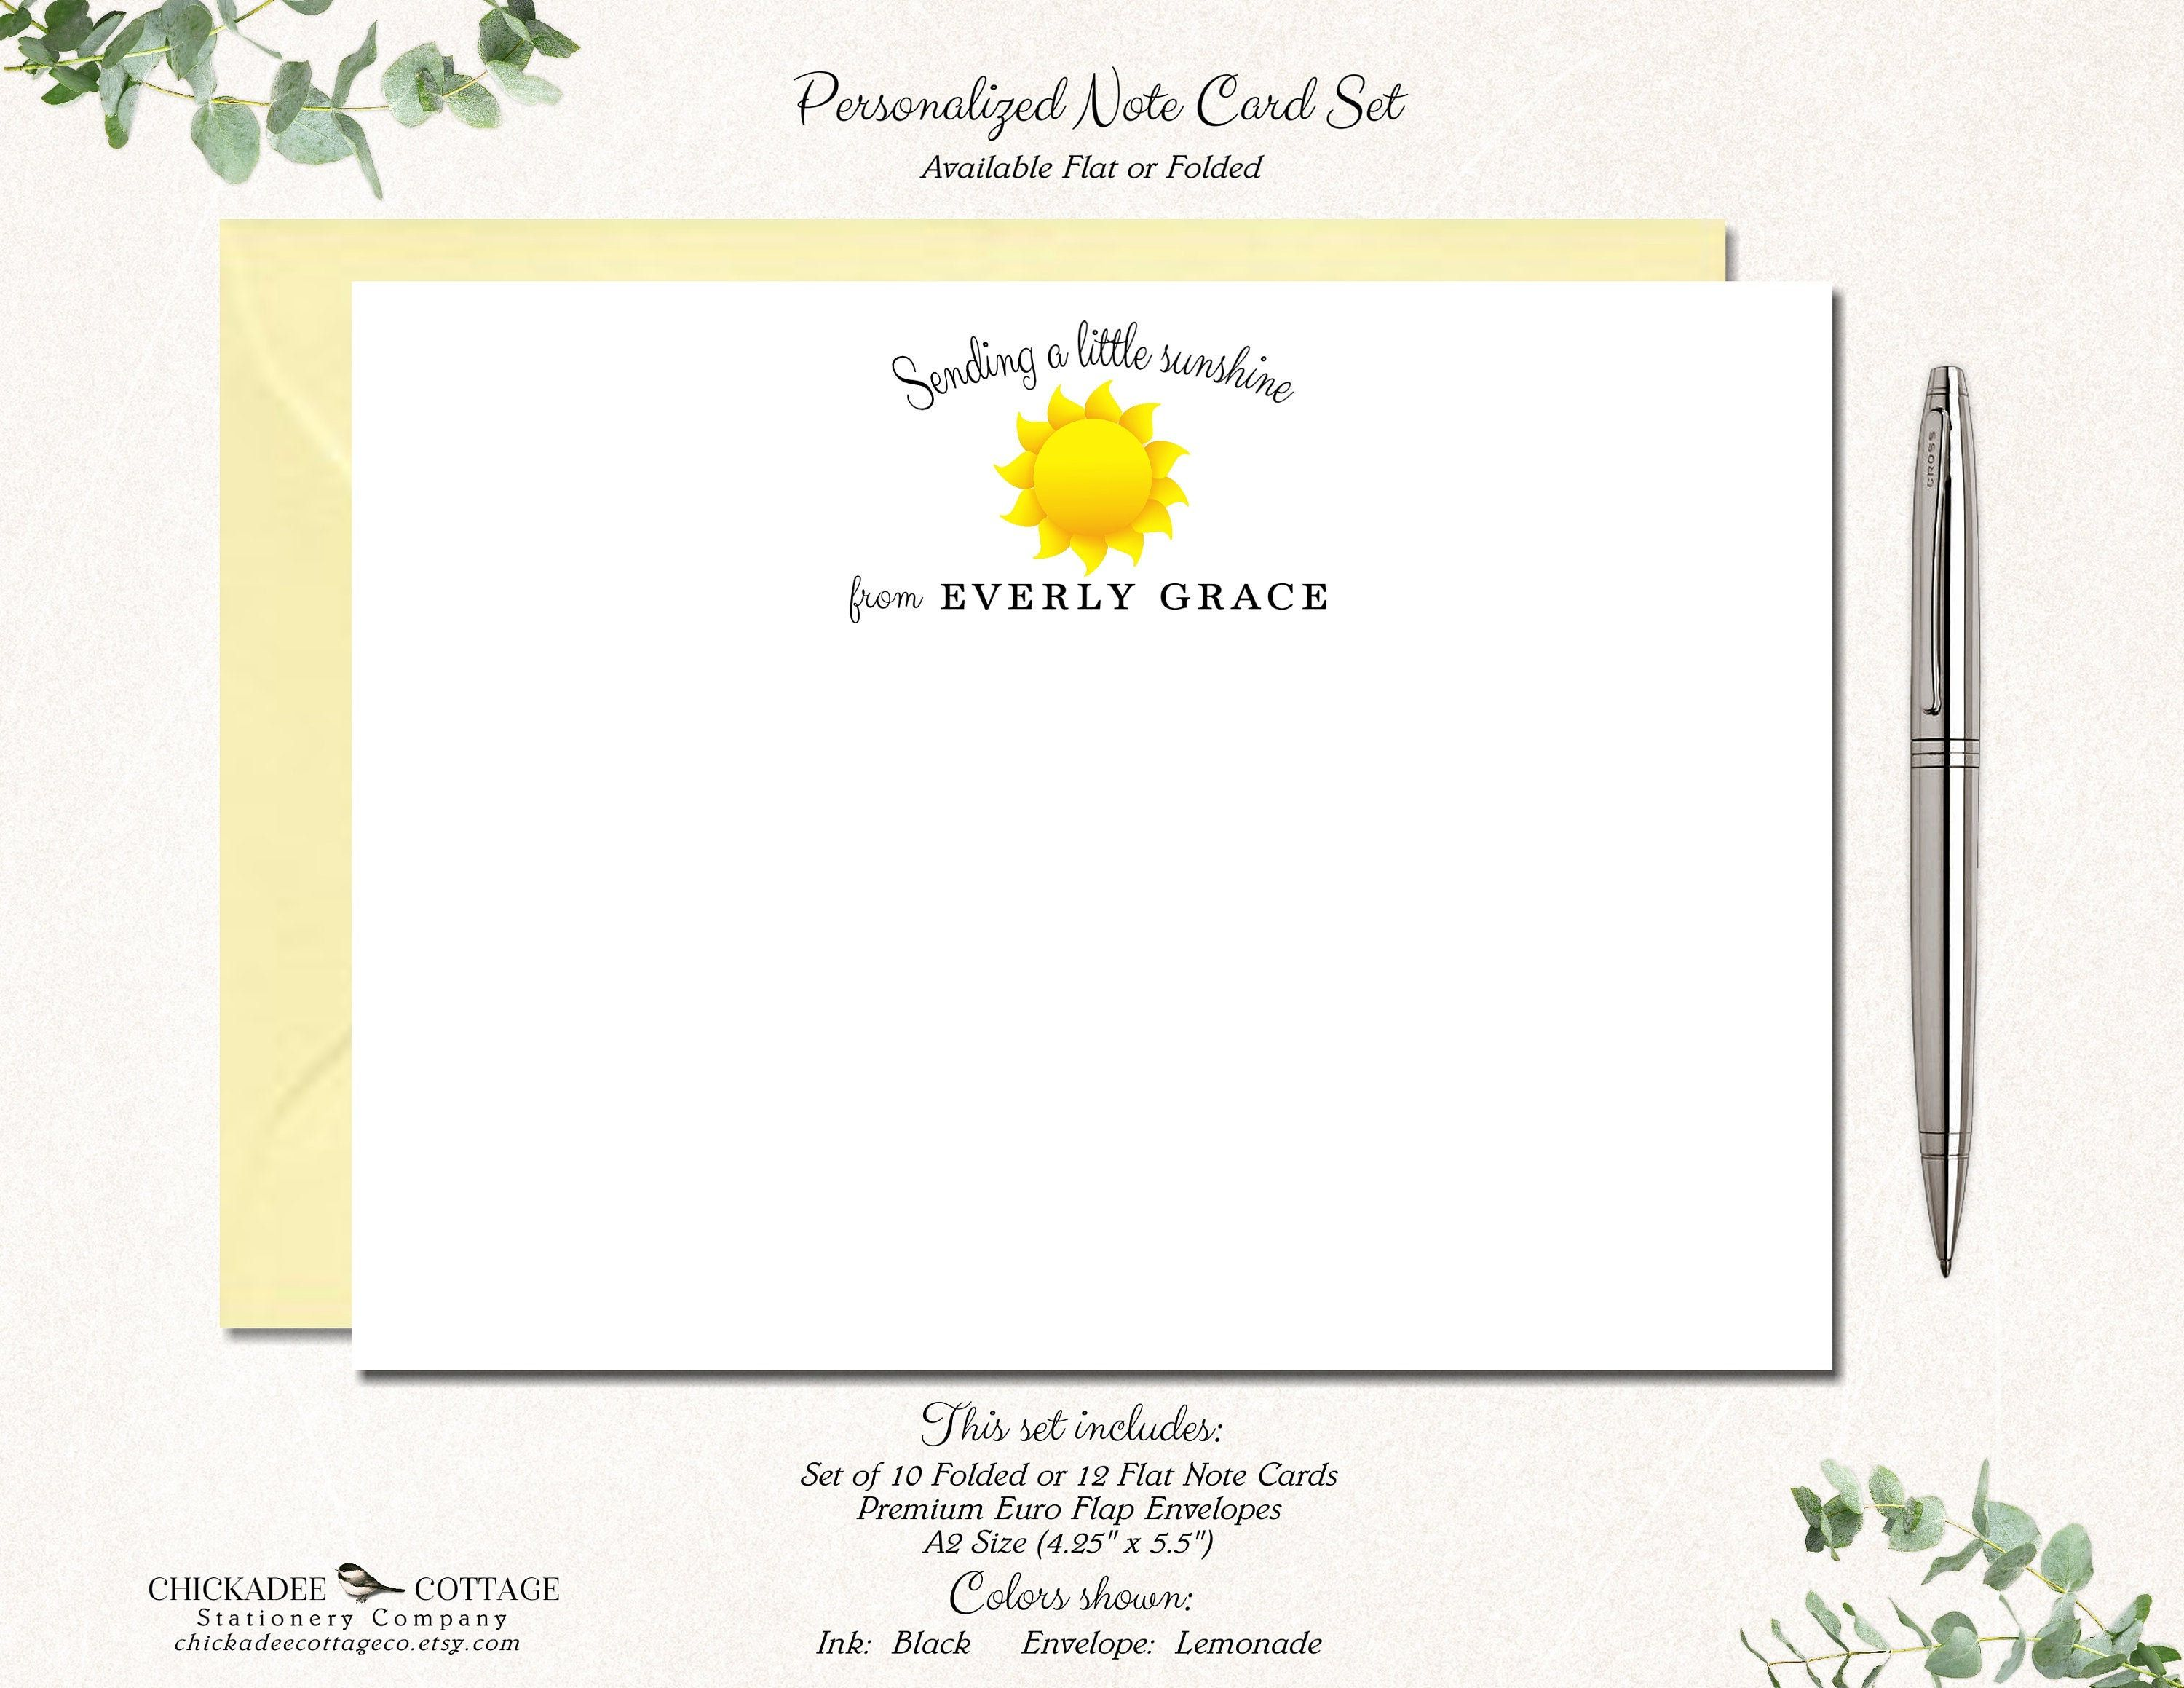 Personalized Kids Note Cards Stationery with envelopes-Set of 12 flat or folded cards